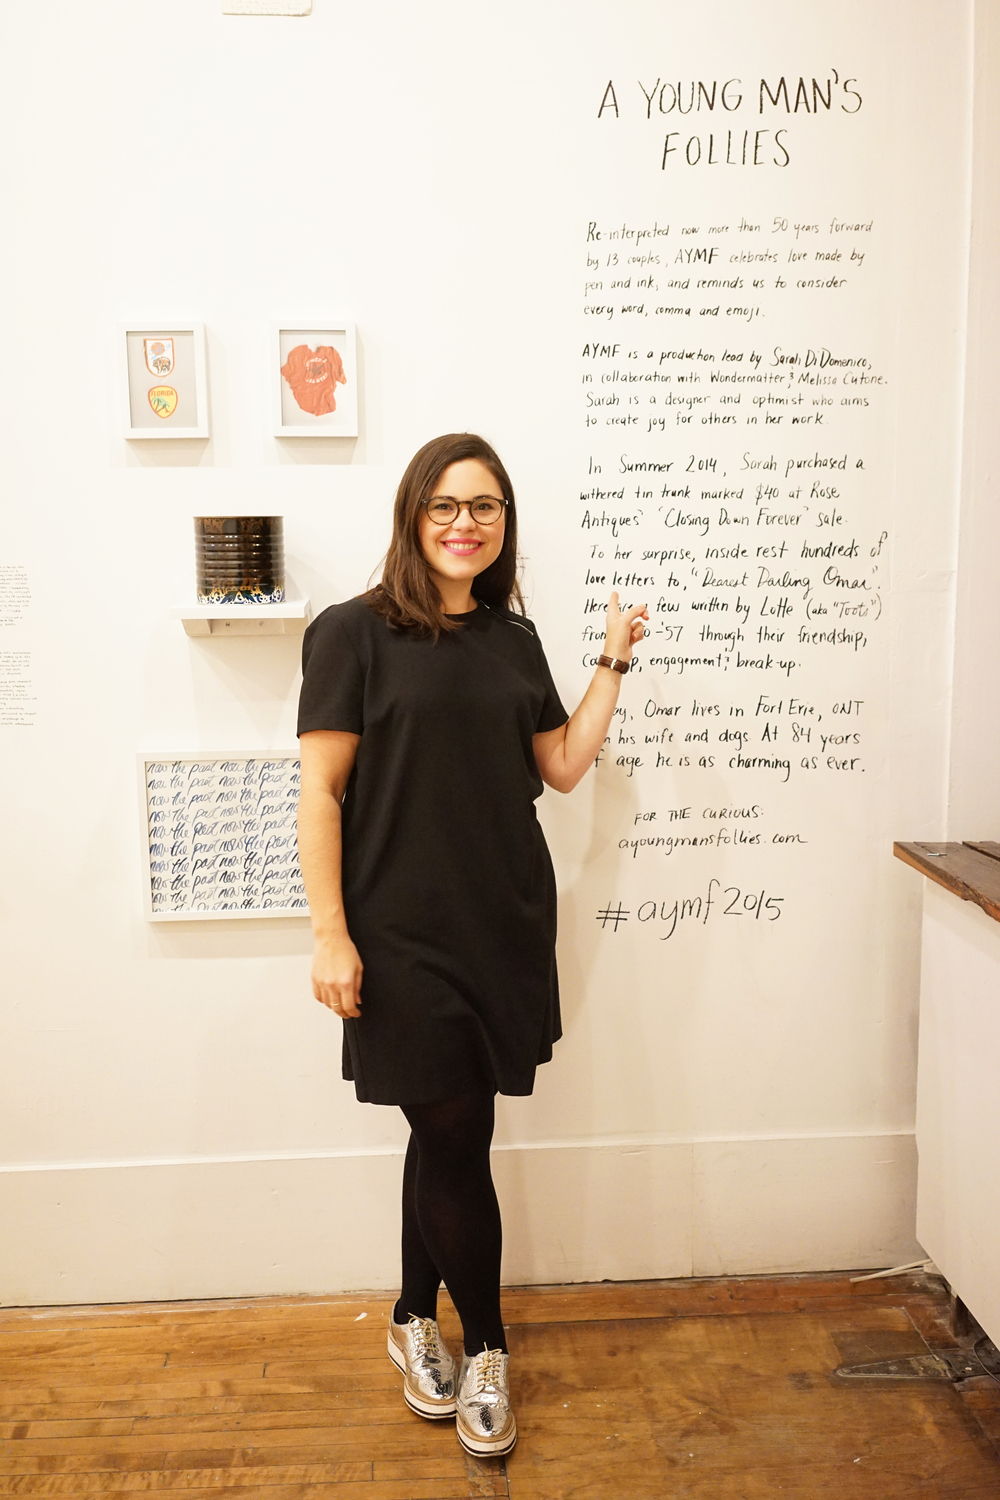 Lead creative director Sarah Di Domenico stands with the show statement. Sarah's hand wrote all artist statements and bios on the walls of the gallery. Sharpie forever!